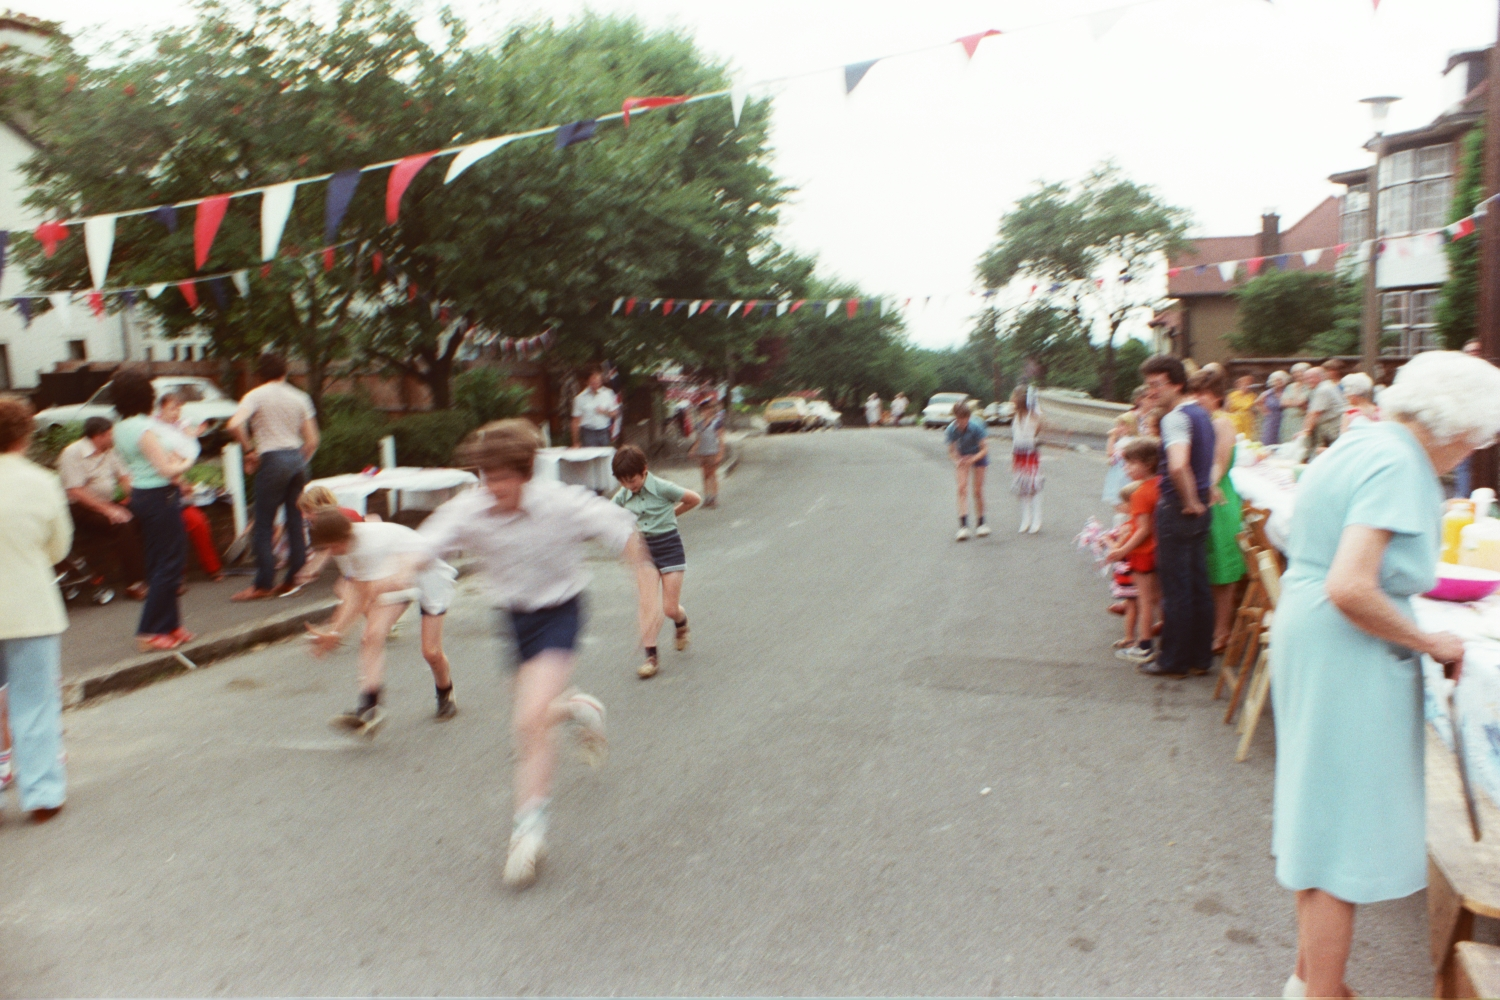 Races at 1981 Woodside Road Street Party for Charles & Dianna's Royal Wedding